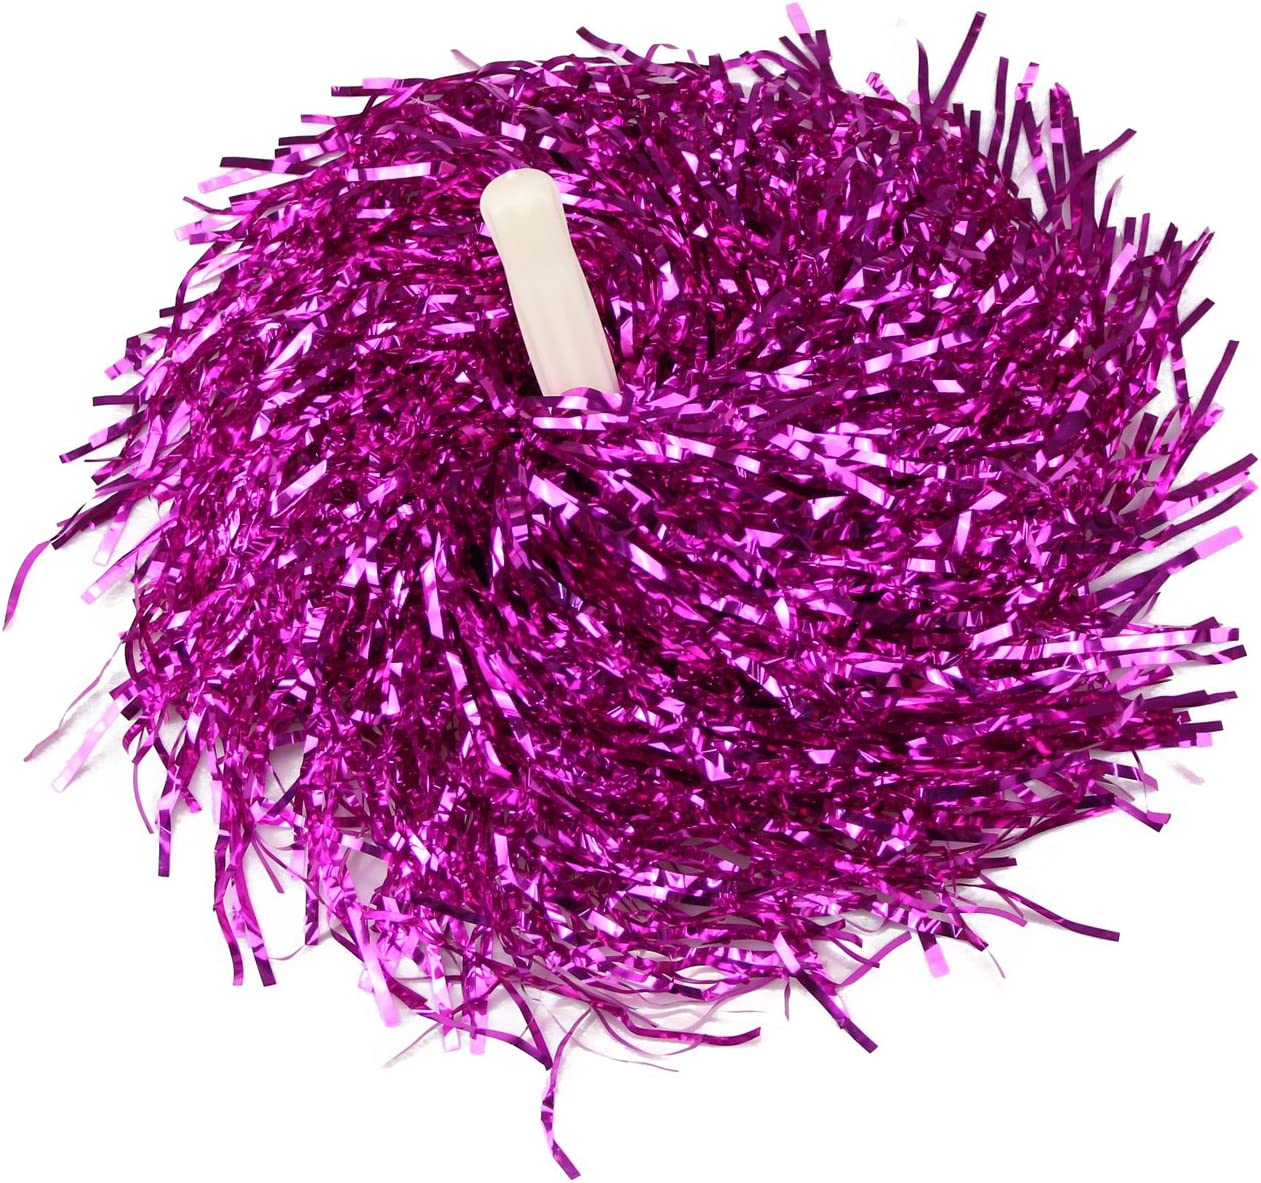 H:oter 1 Pair Dealing full price Popularity reduction Straight Handle Party Pom Costum Poms Cheerleading